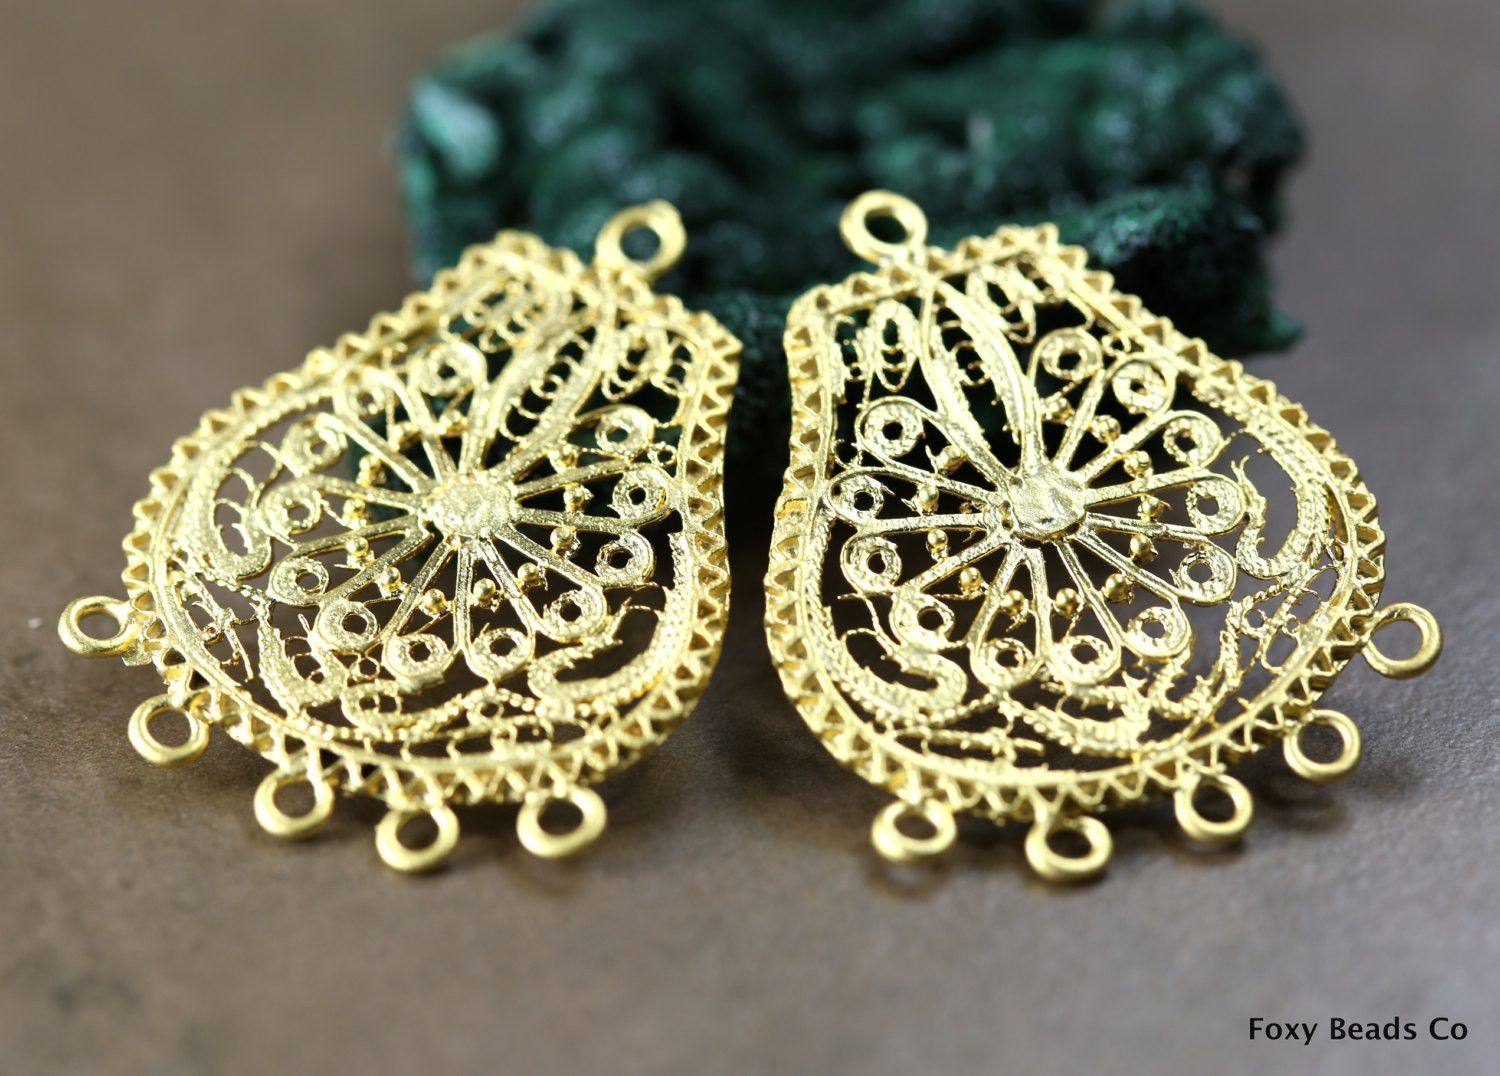 Indian style filigree chandelier earring component large 2 pieces indian style filigree chandelier earring component large 2 pieces pendant 24k gold plated earring components mozeypictures Gallery